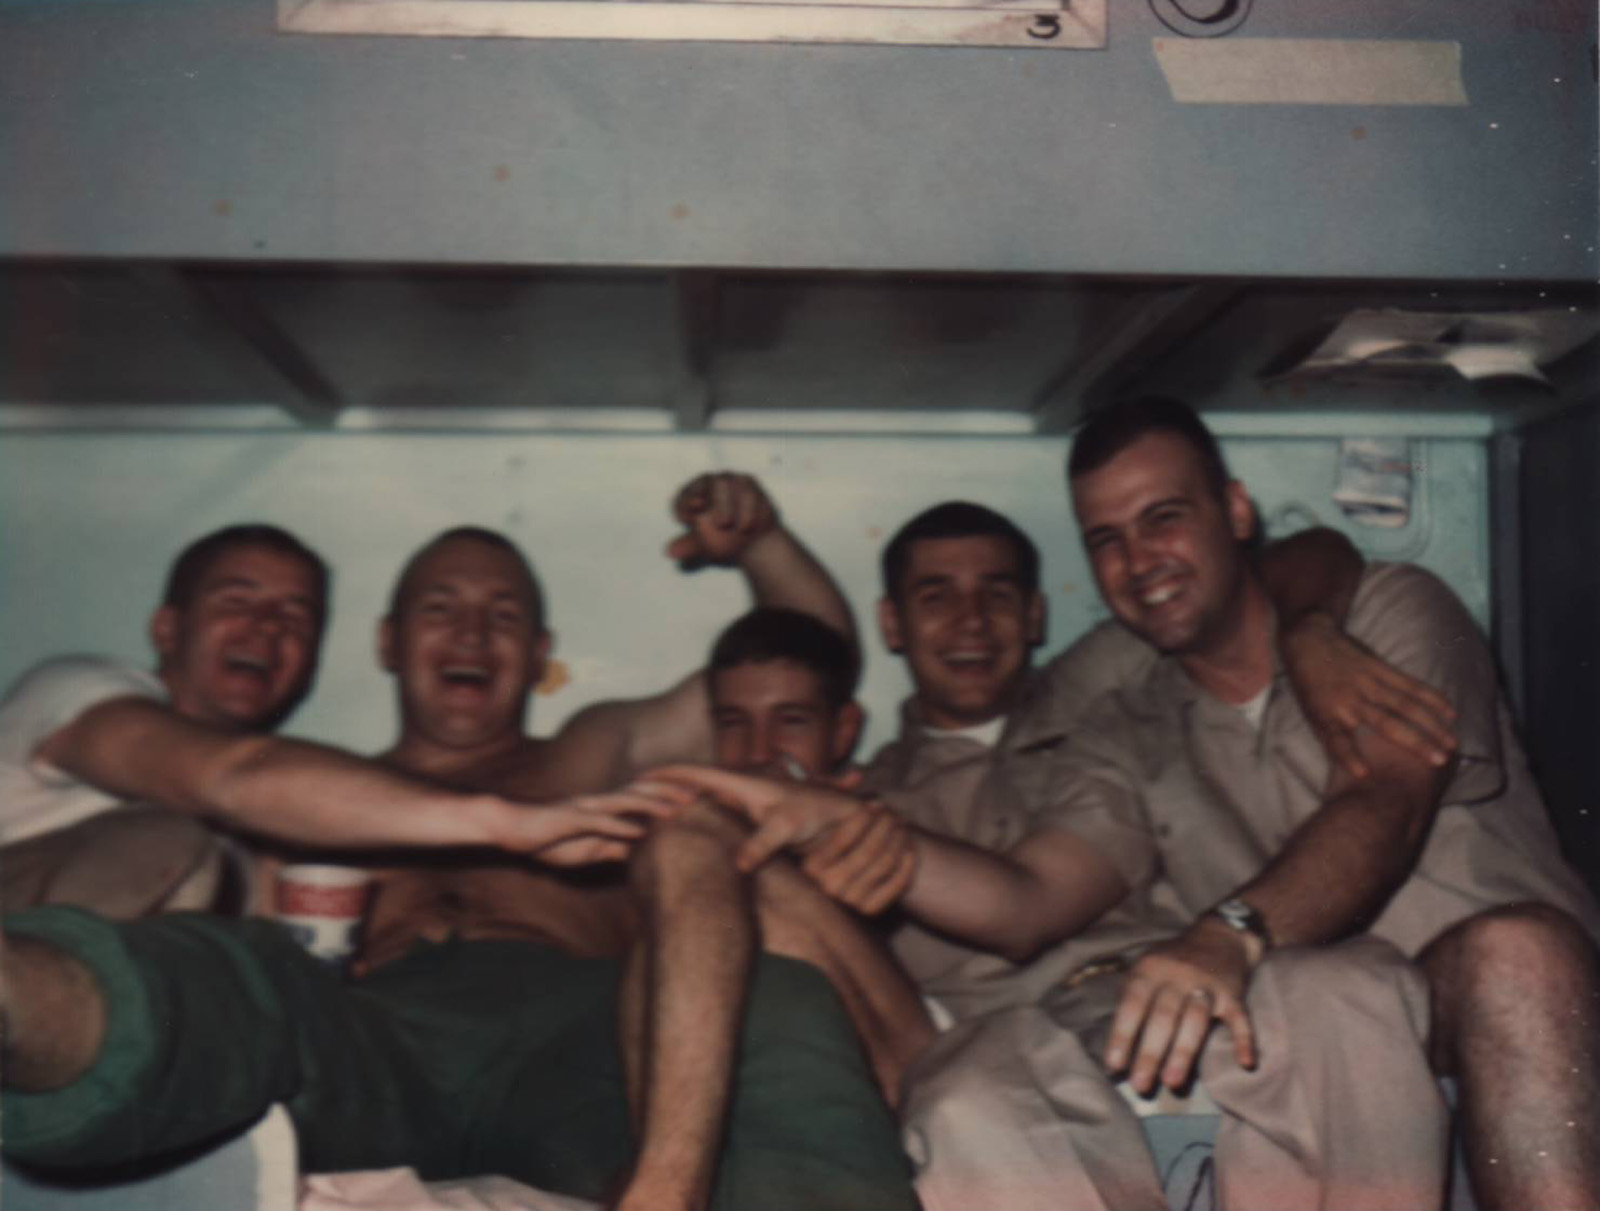 Paul in center with Rich Keenan and Vern Von Sydow to his right; and Rick Grant and Ollie Donelan to his left. The picture was taken aboard the USS Kearsarge during Paul's 1966 deployment flying search and rescue missions in Vietnam.